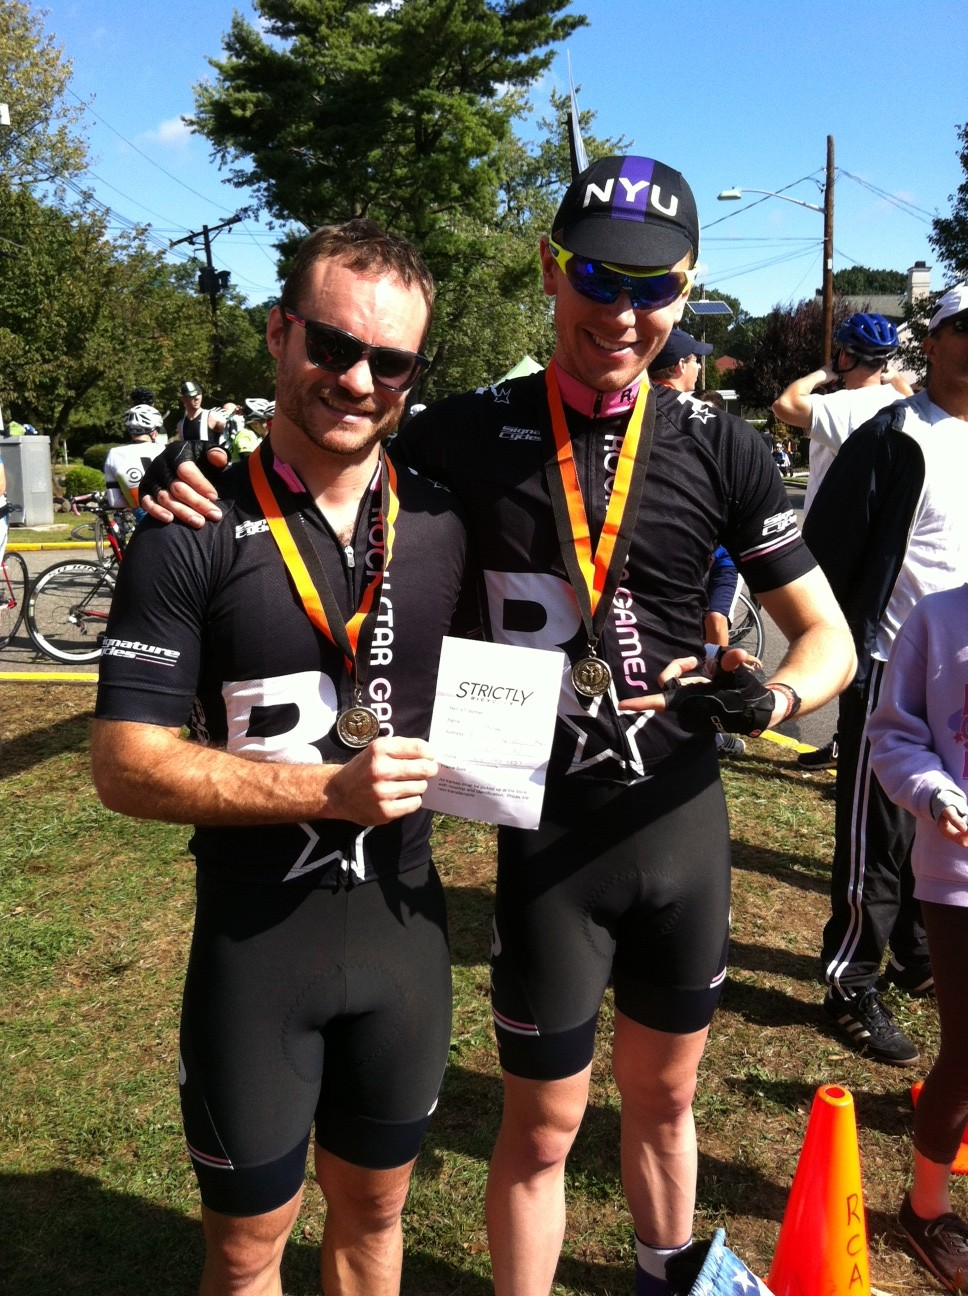 Caffery (L) and Wilson with their medals and the voucher Caffery won for a new Cannondale CAAD10 frameset.